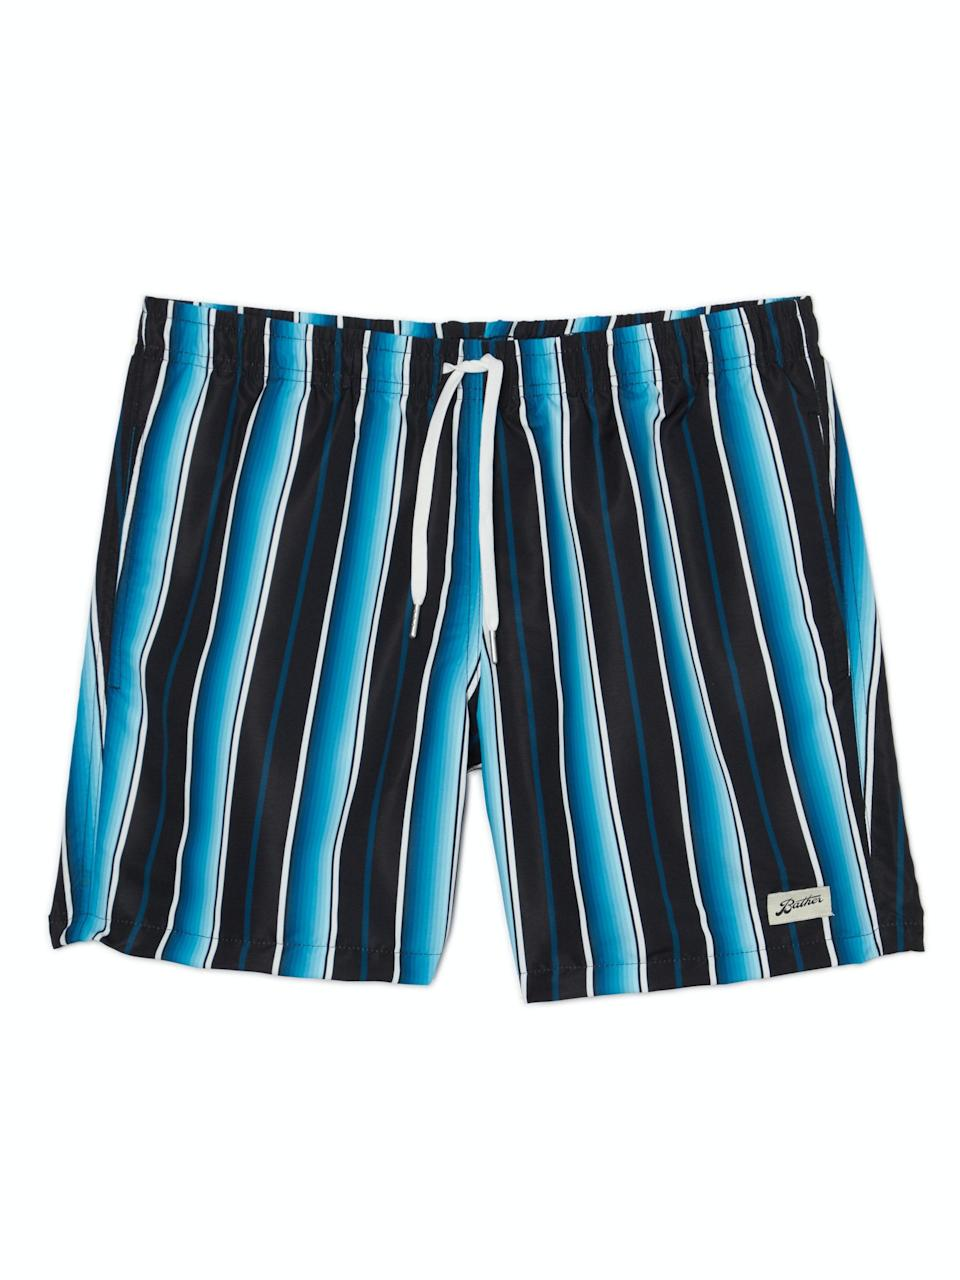 "Summer starts the day before Father's Day this year, so gift dad a fresh pair of swim trunks he can wear through September. Get free two-day shipping on this nautical pair from Verishop, plus an extra 25% off as part of the retailer's <a href=""https://www.glamour.com/gallery/verishop-last-minute-gifts?mbid=synd_yahoo_rss"" rel=""nofollow noopener"" target=""_blank"" data-ylk=""slk:birthday sale"" class=""link rapid-noclick-resp"">birthday sale</a>. $85, Verishop. <a href=""https://www.verishop.com/bather/swimsuit/black-stripe-swim-trunk/p4323182215191?color=black_blue"" rel=""nofollow noopener"" target=""_blank"" data-ylk=""slk:Get it now!"" class=""link rapid-noclick-resp"">Get it now!</a>"